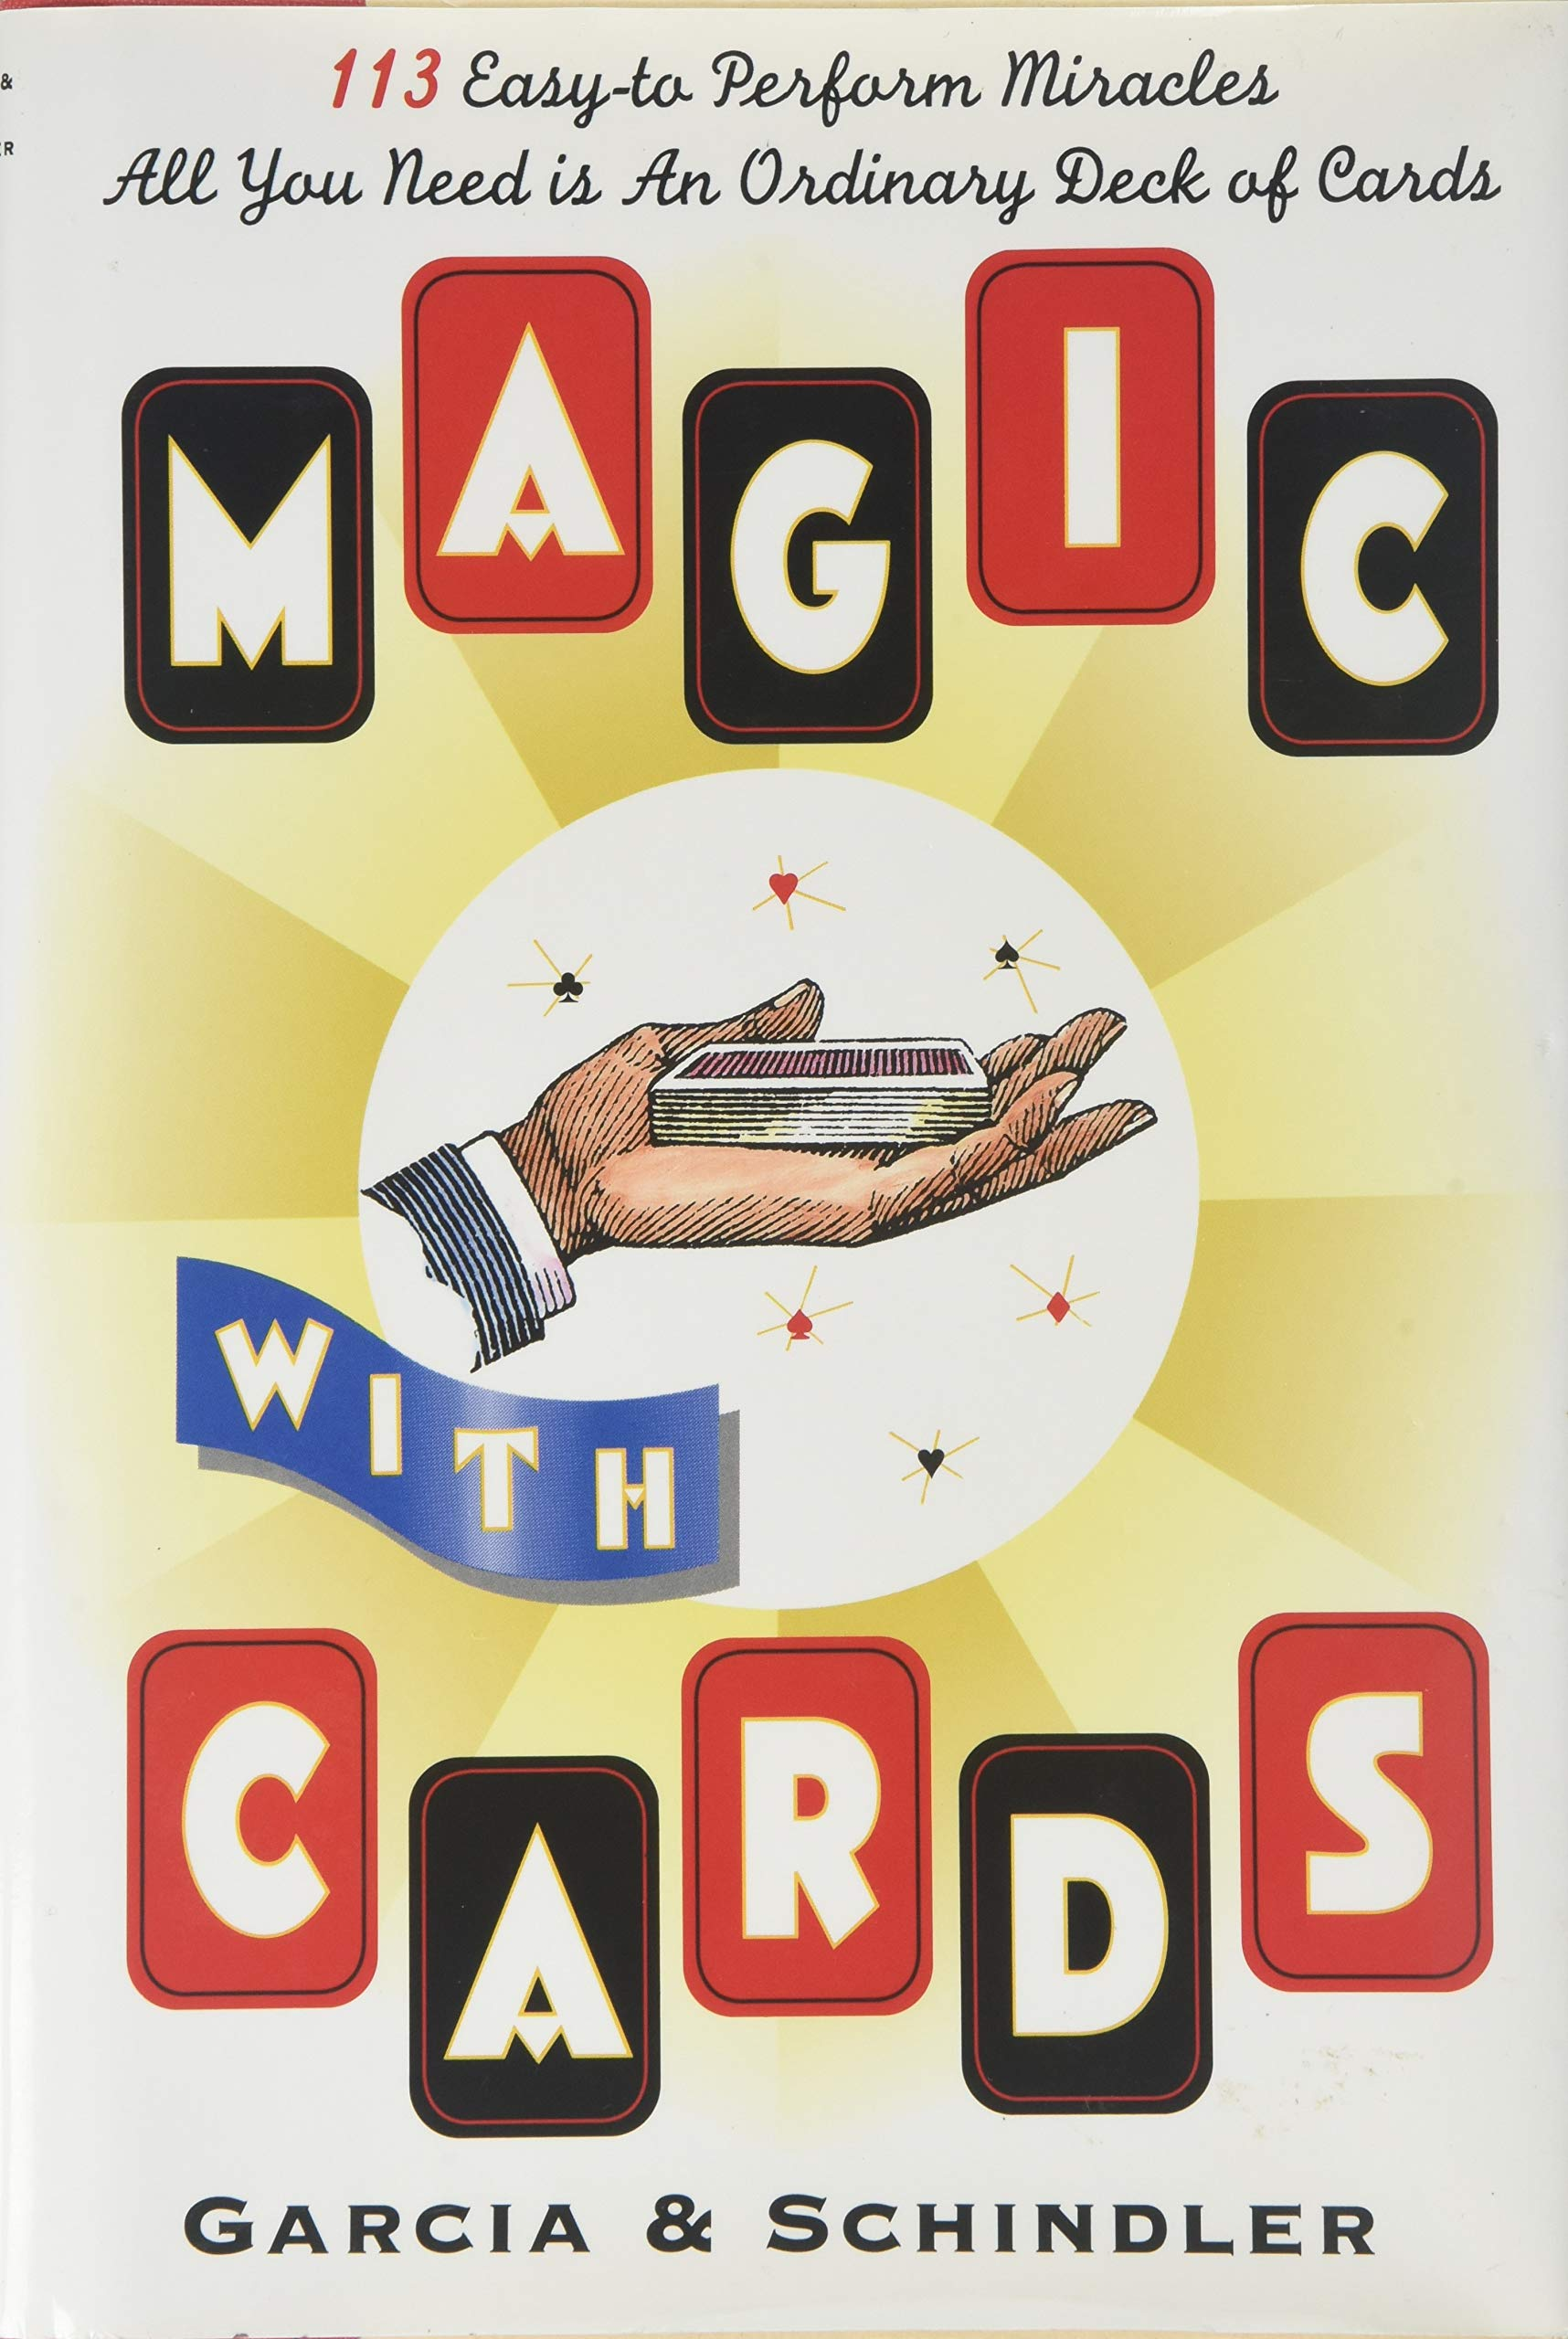 Magic with Cards: 113 Easy-to-Perform Miracles with an Ordinary Deck of Cards: Frank Garcia, George Schindler, Ed Tricomi: 9781566191241: Amazon.com: Books